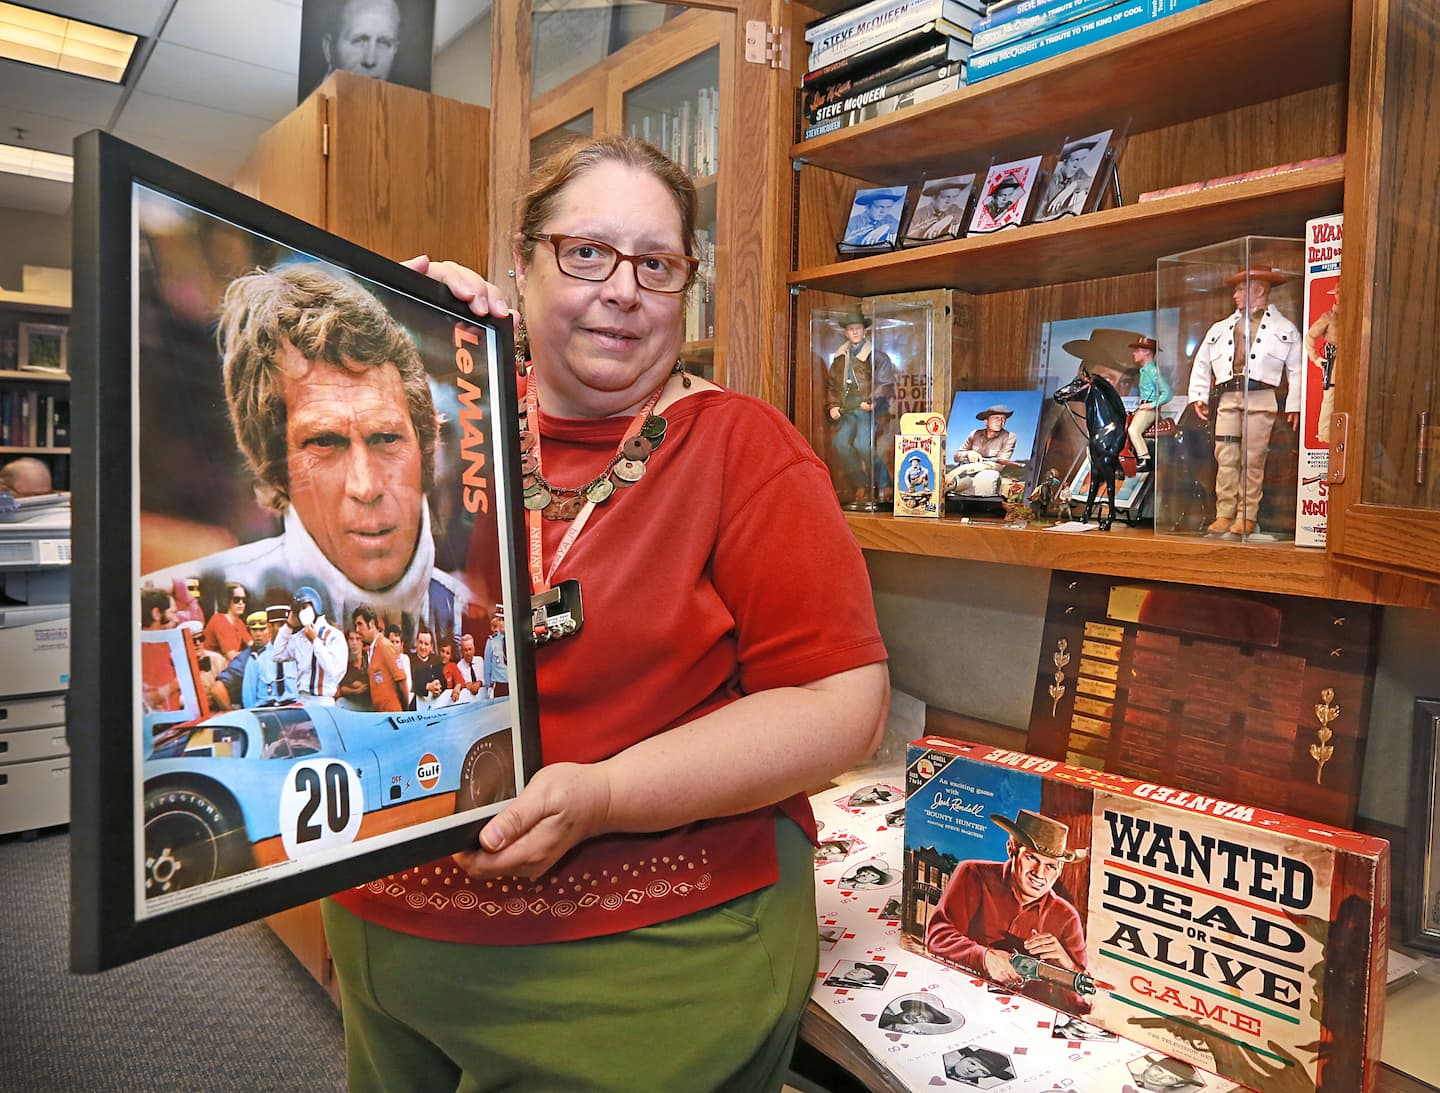 Michele Patterson, with the Beech Grove Historical Society, holds a framed movie poster from the 1971 film Le Mans starring Beech Grove native, Steve McQueen.